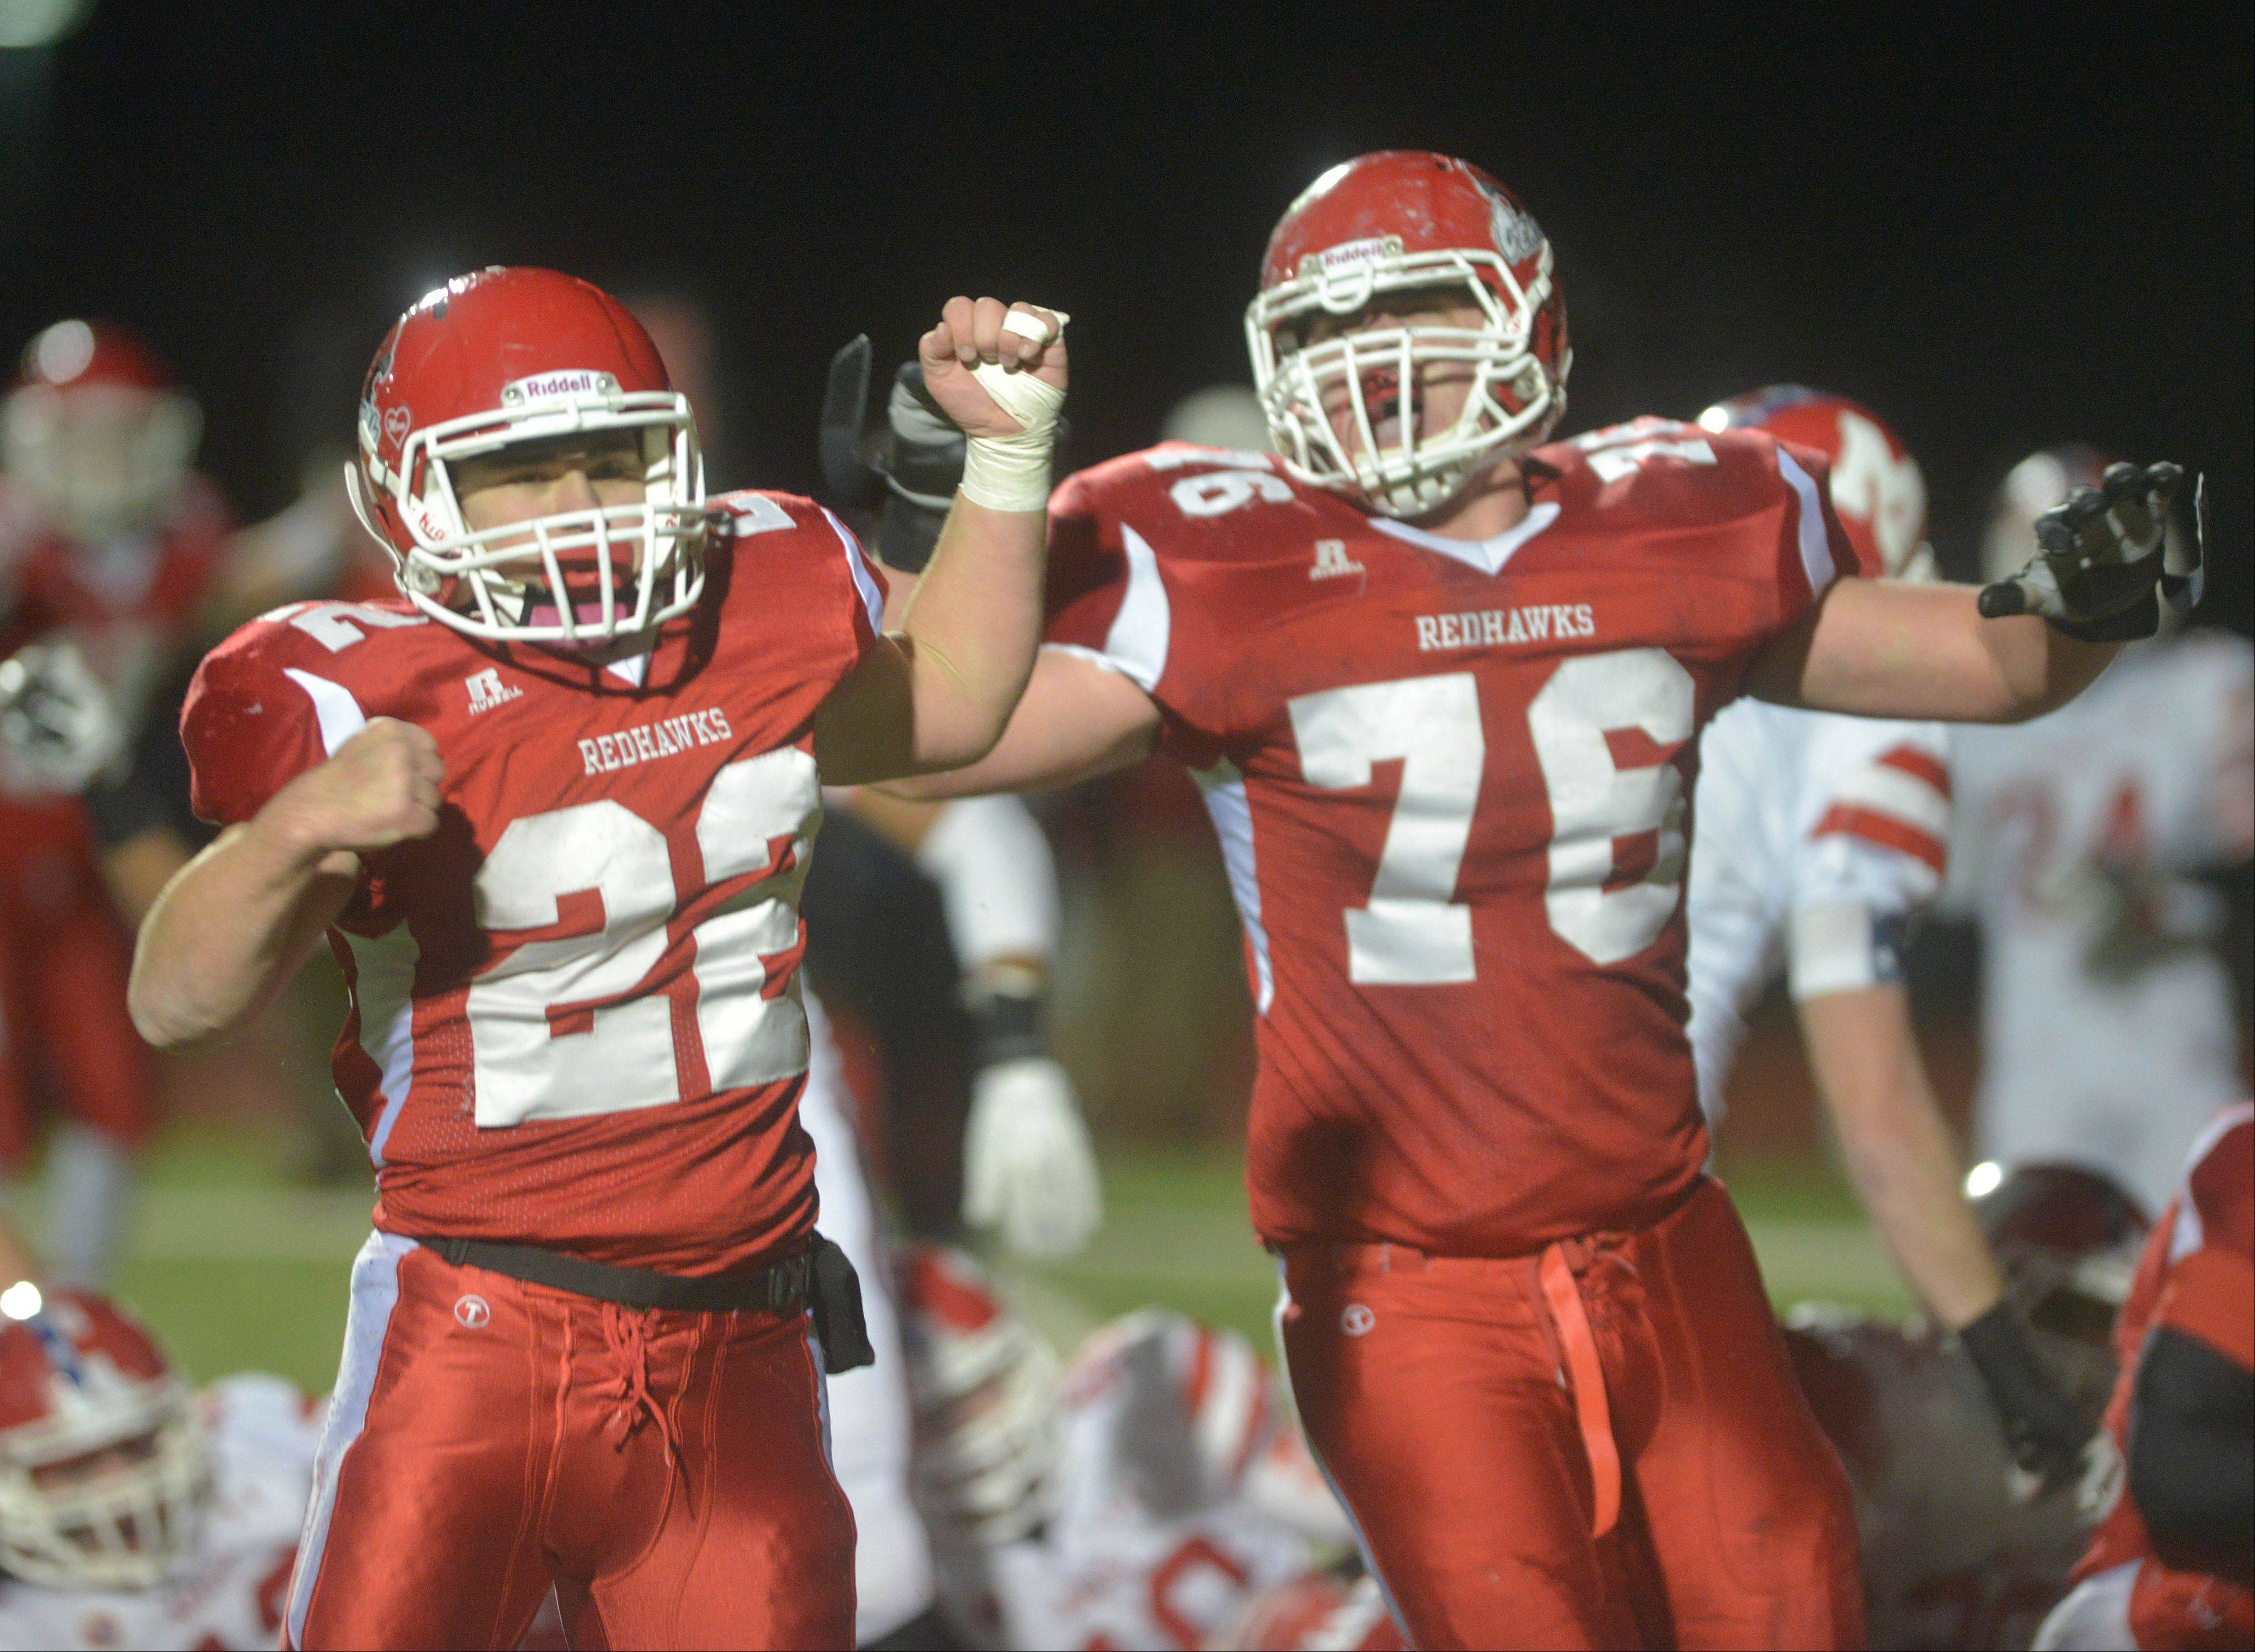 Kevin Clifford, left, and Ryan Minick of Naperville Central celebrate the game-winning touchdown against Marist Saturday night in the Class 8A semifinals. The Redhawks' 27-21 win advanced the team to the state championship game against Loyola Academy at 7 p.m. on Saturday, Nov. 30 at Huskie stadium in DeKalb.